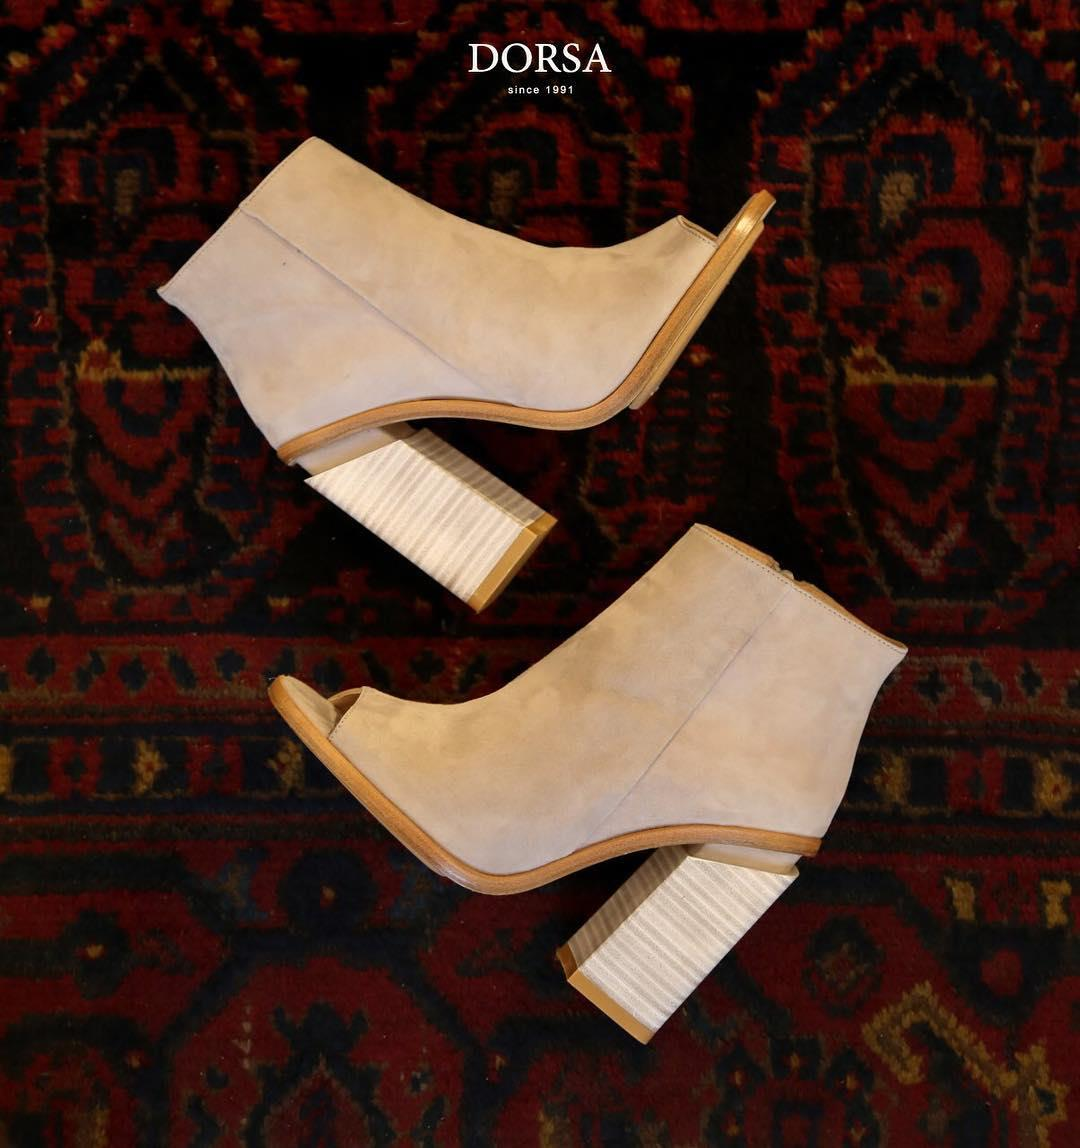 #shoes#leather#dorsa